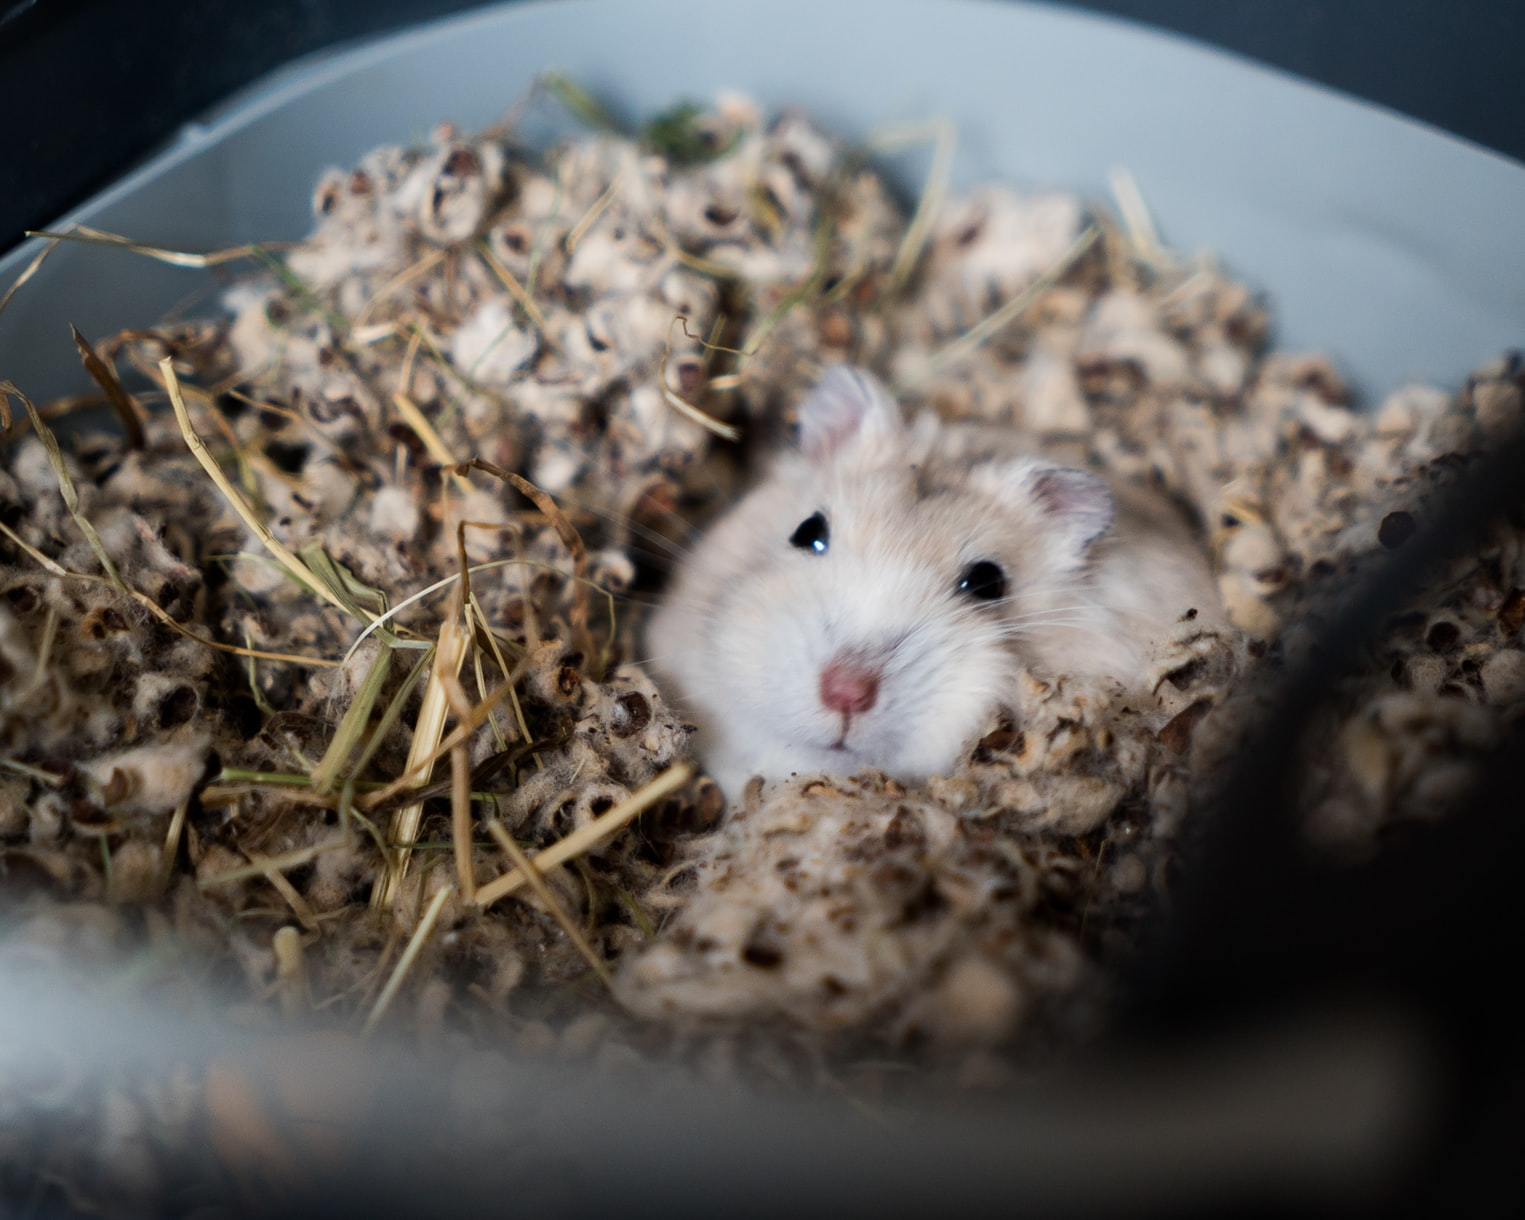 a hamster resting on its crib